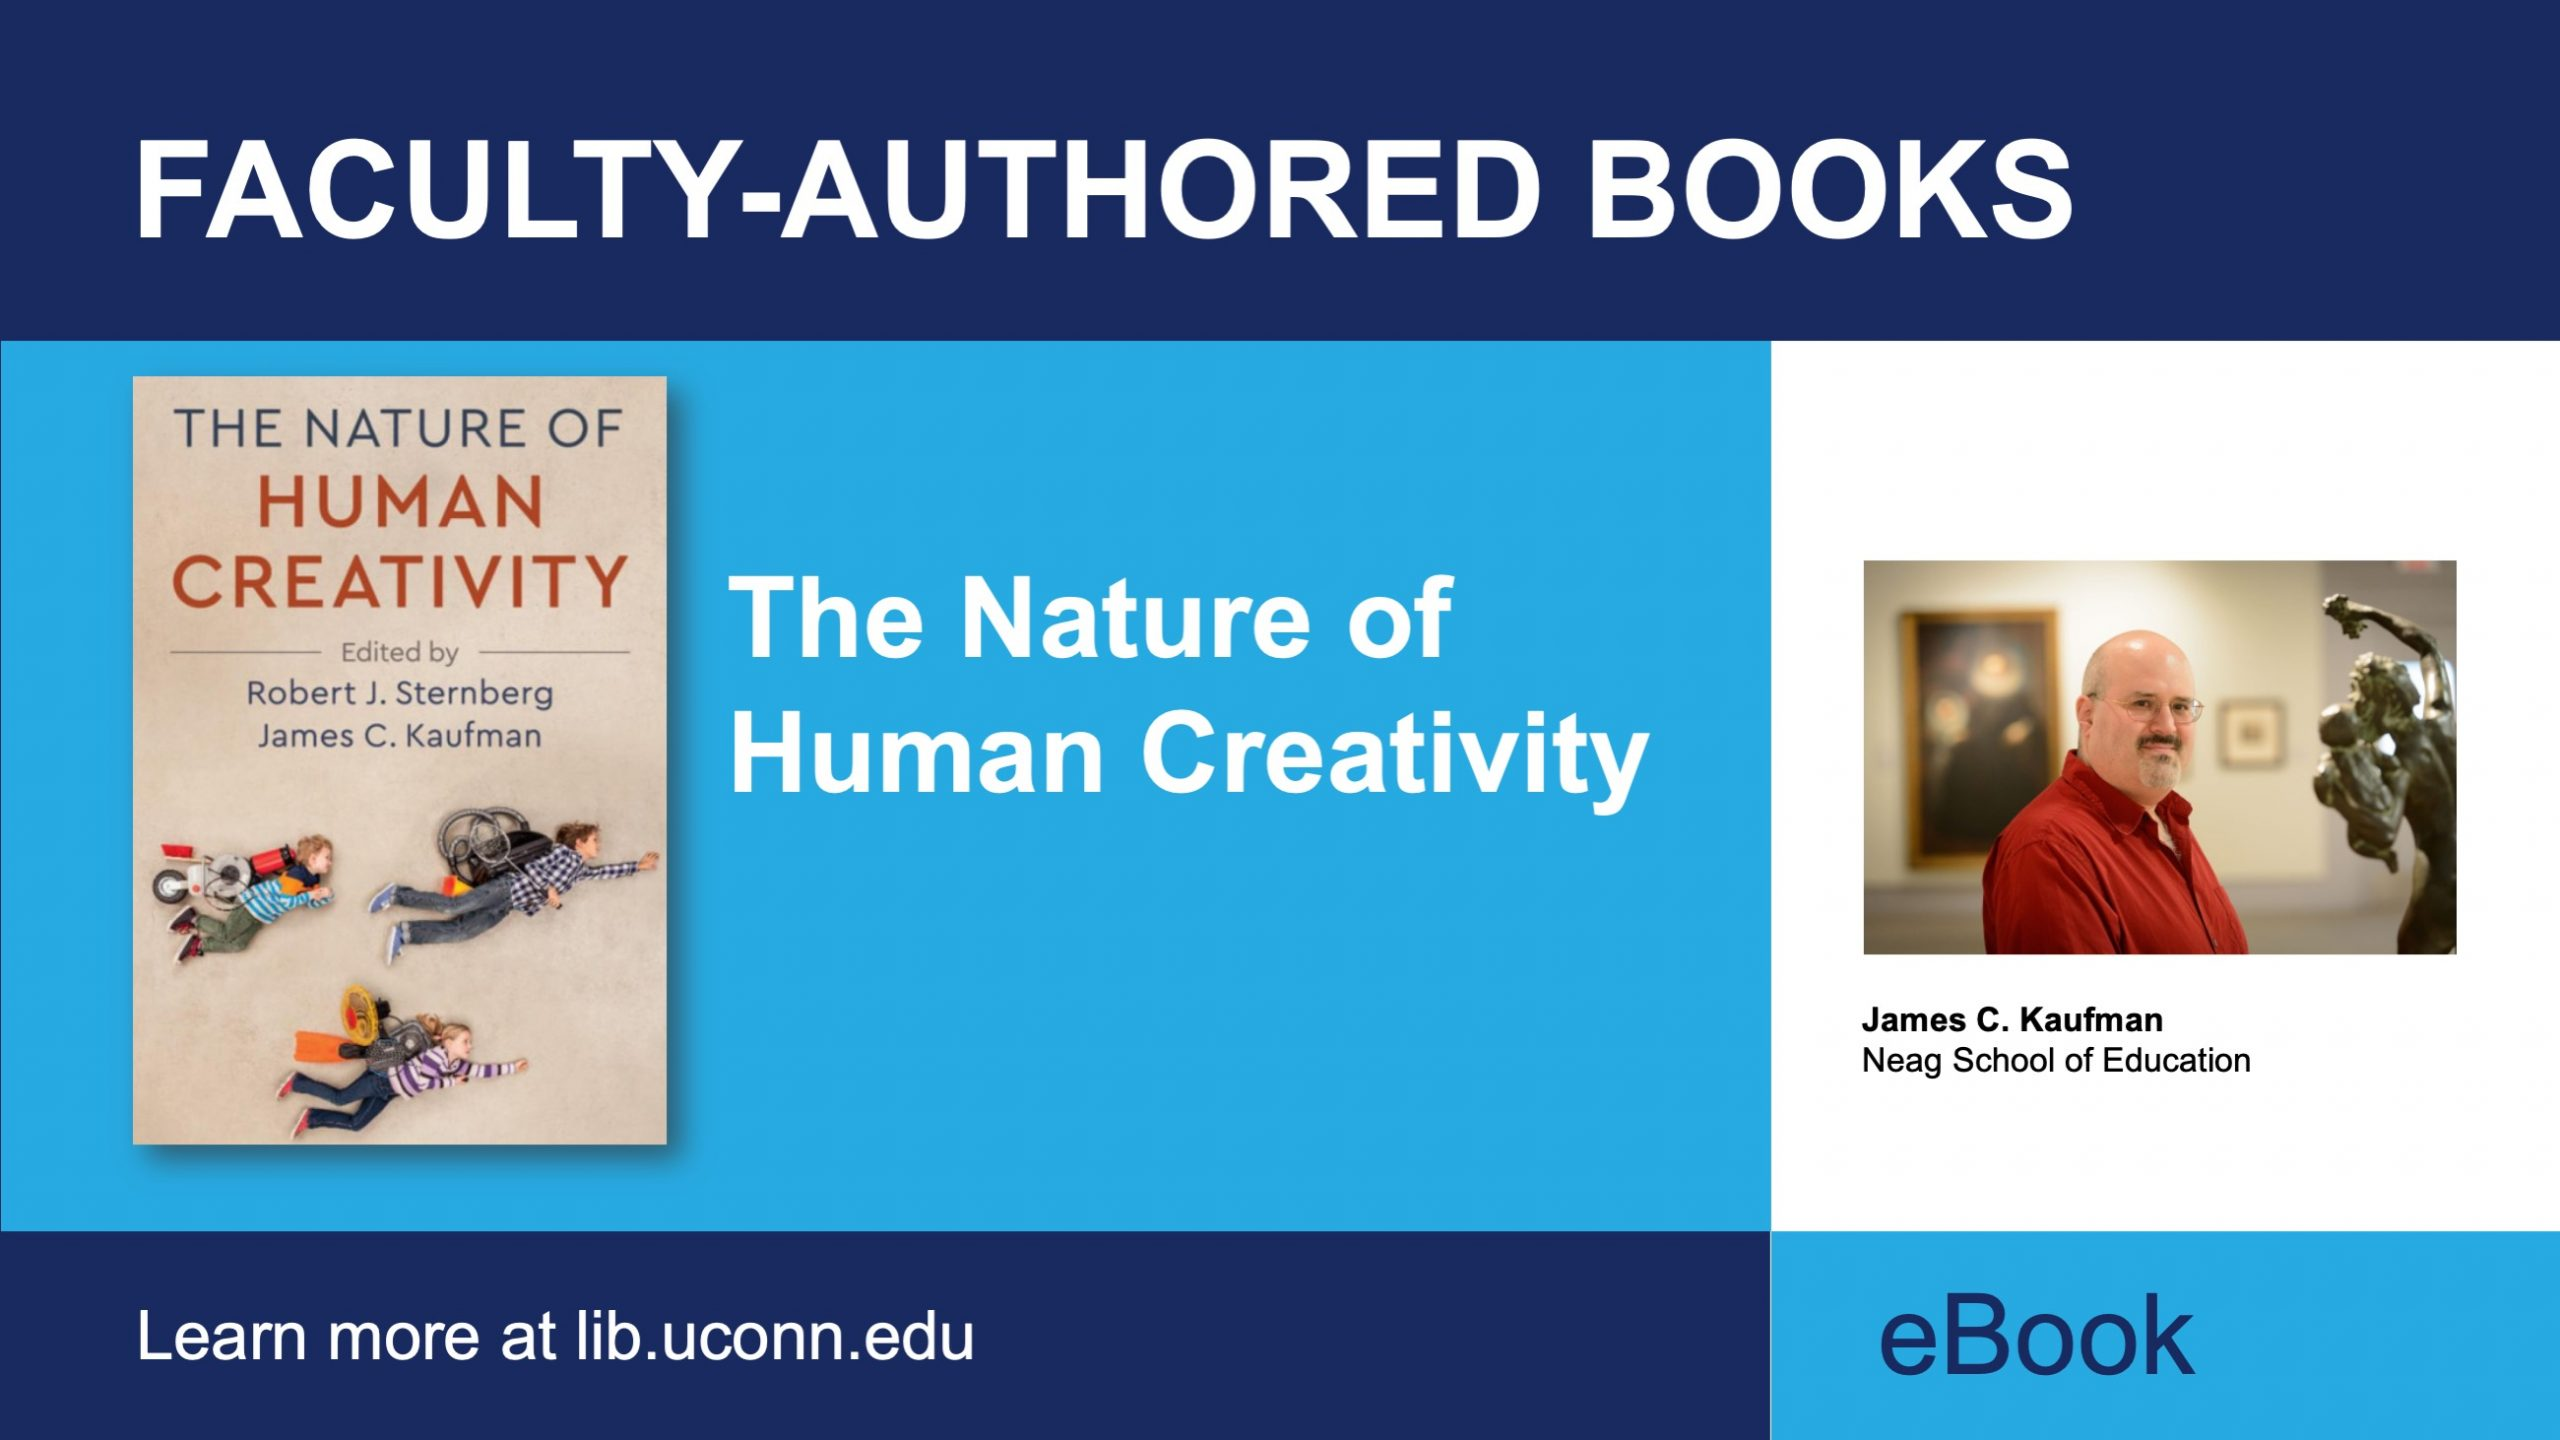 Image description: marketing image, includes text: Faculty Authored Books learn more at lib.uconn.edu. eBook. Title: The Nature of Human Creativity, Author: James C. Kaufman, Department: Neag School of Education